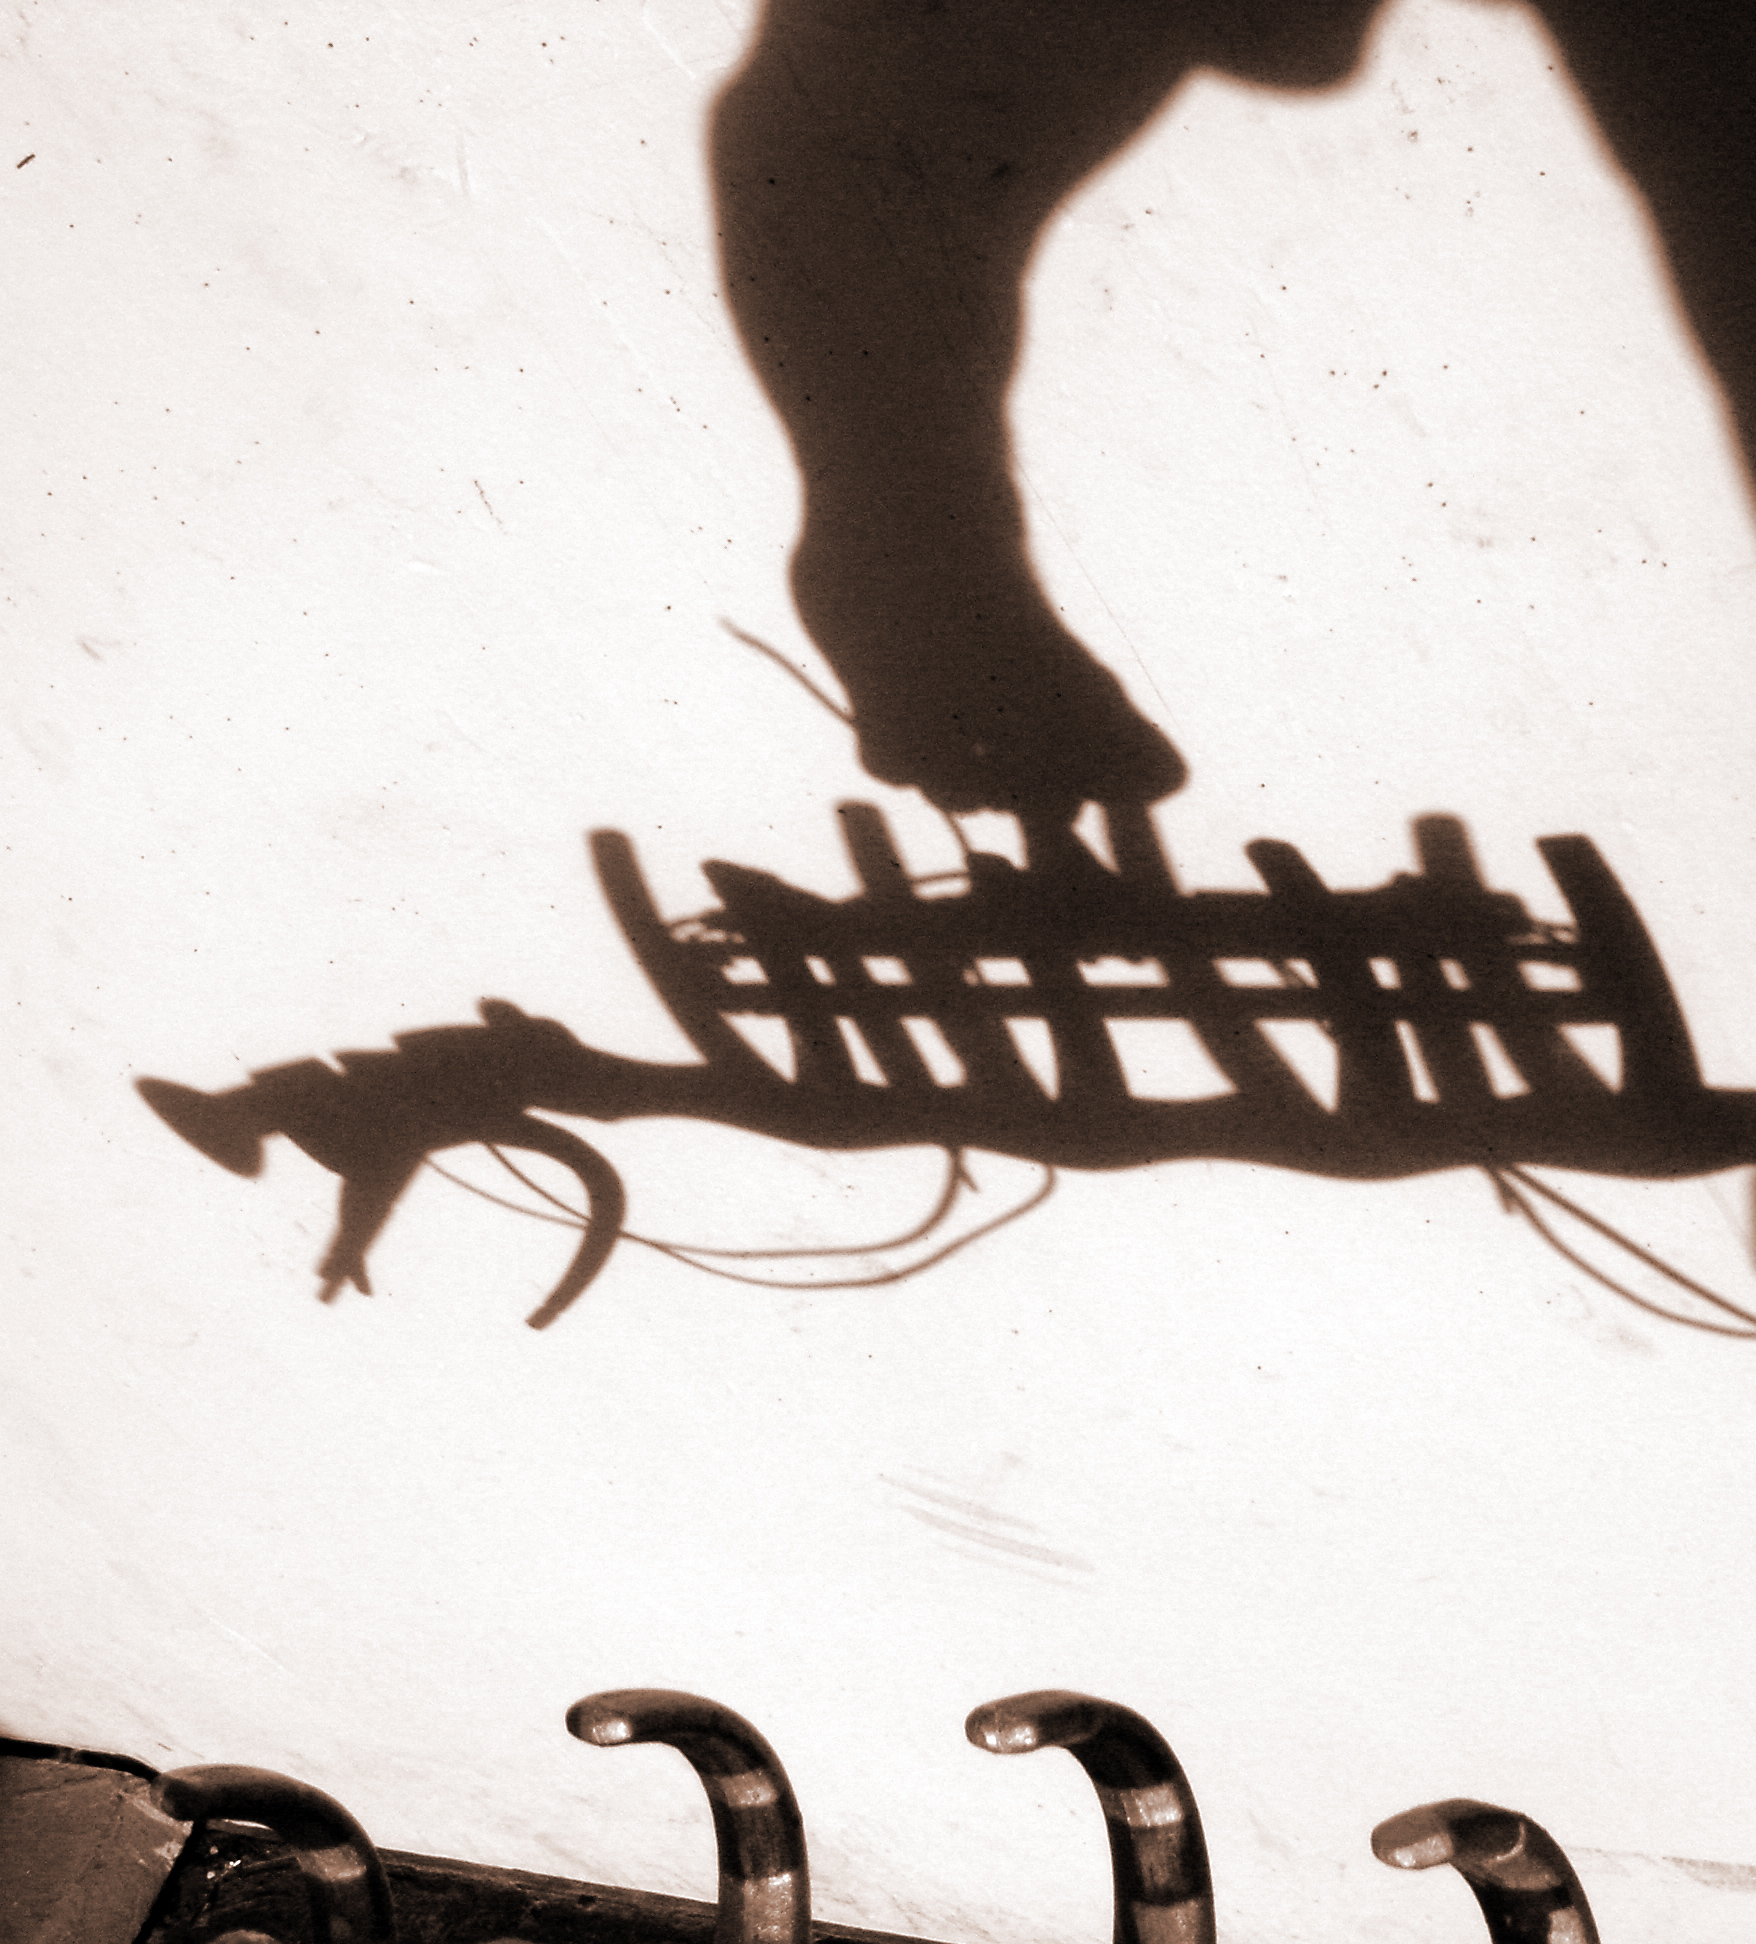 Plesiosaur light fixture shadows (2005)